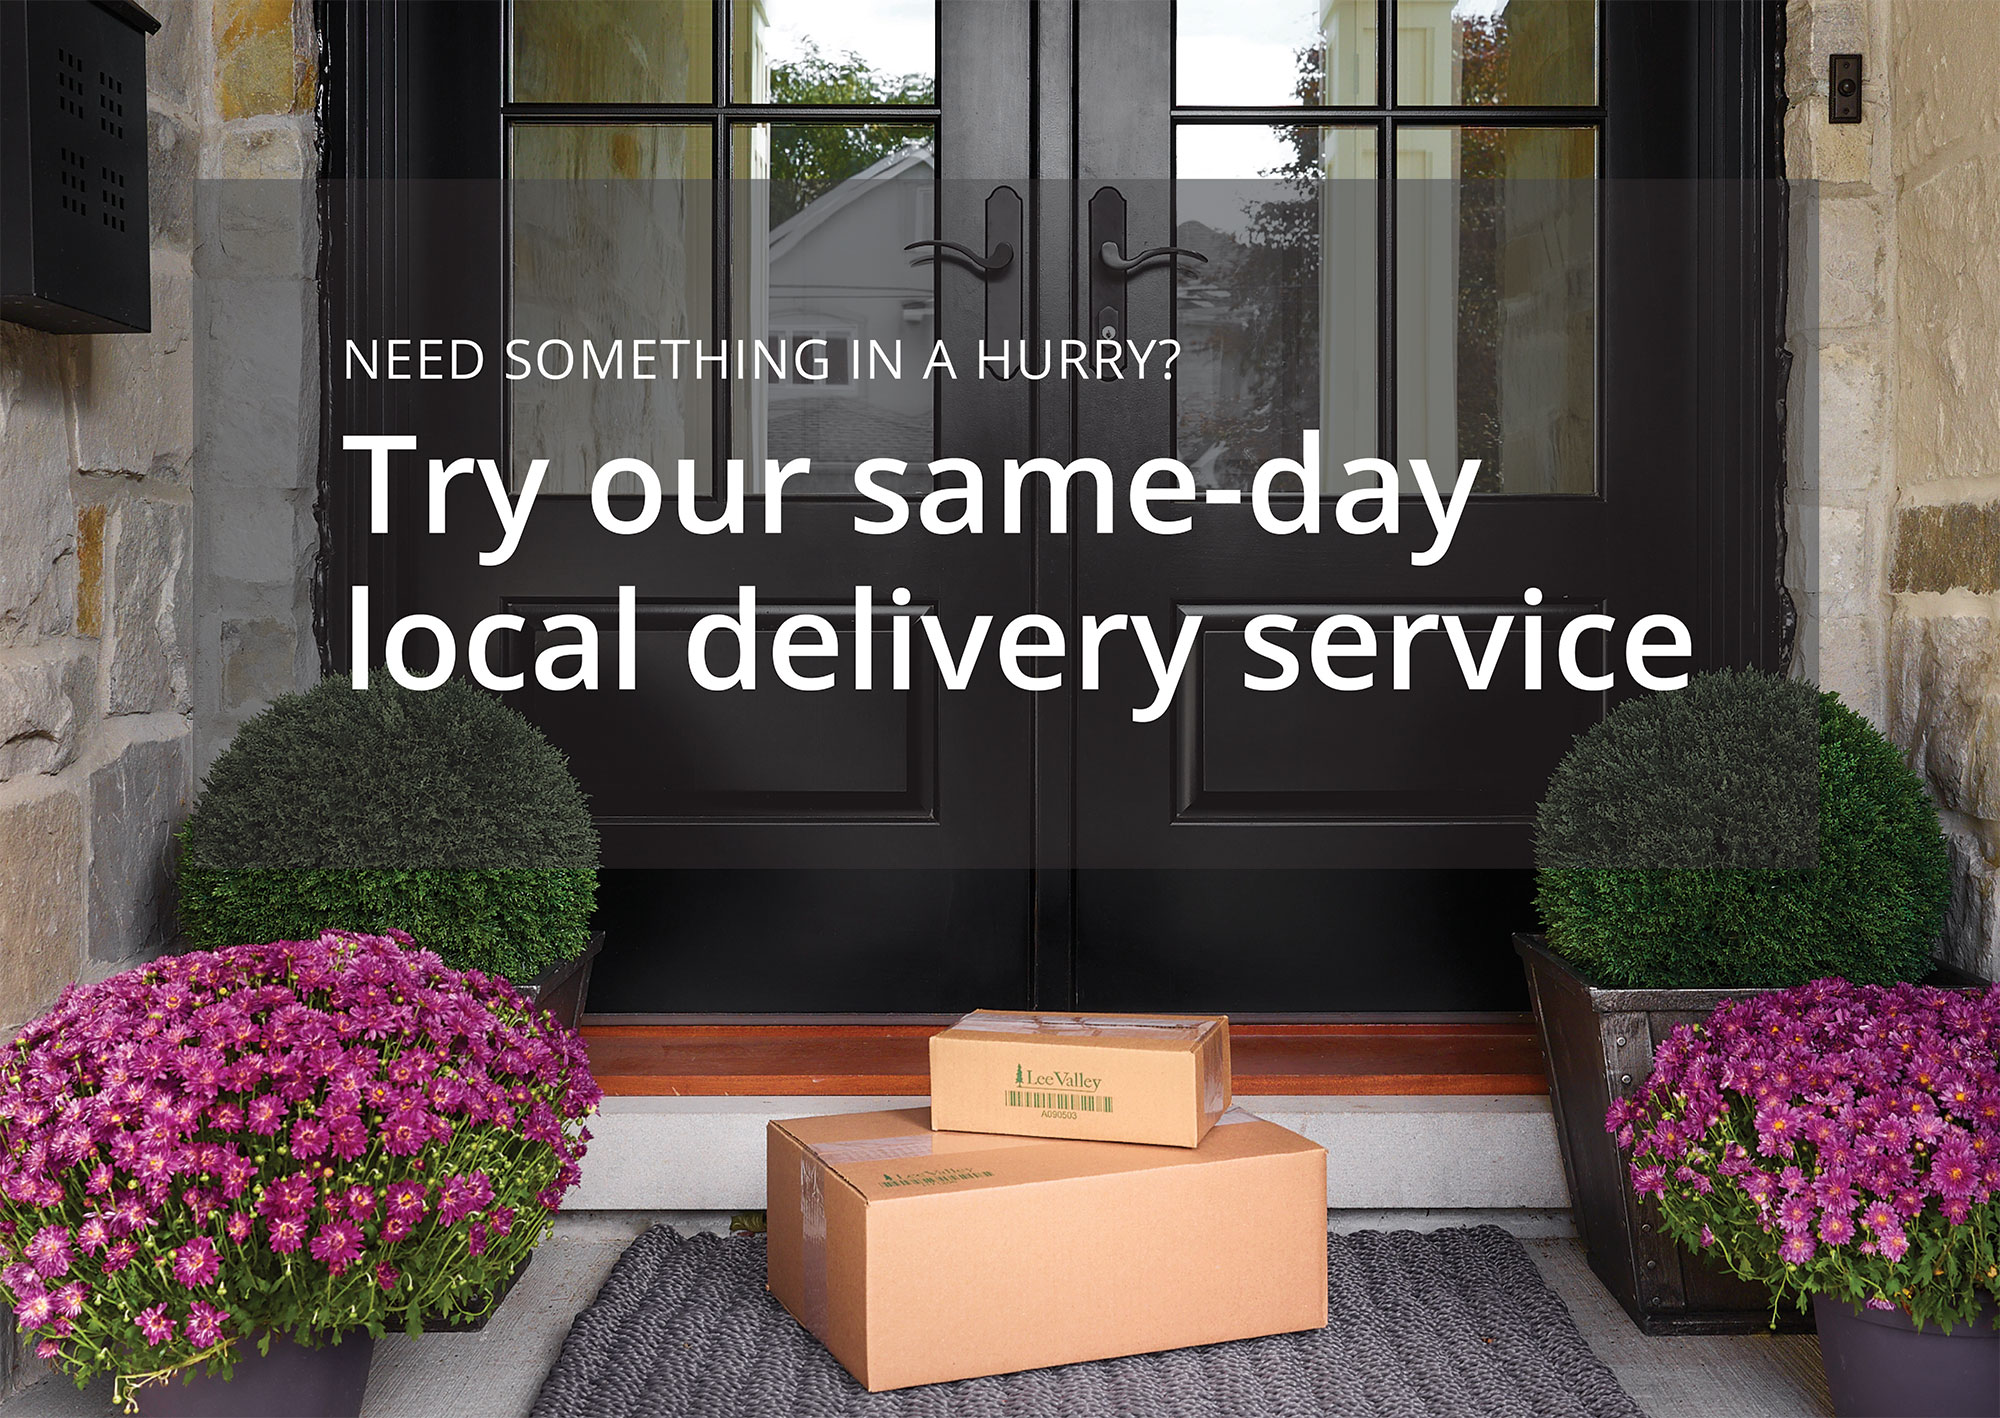 Need something in a hurry? Try our same-day local delivery service.